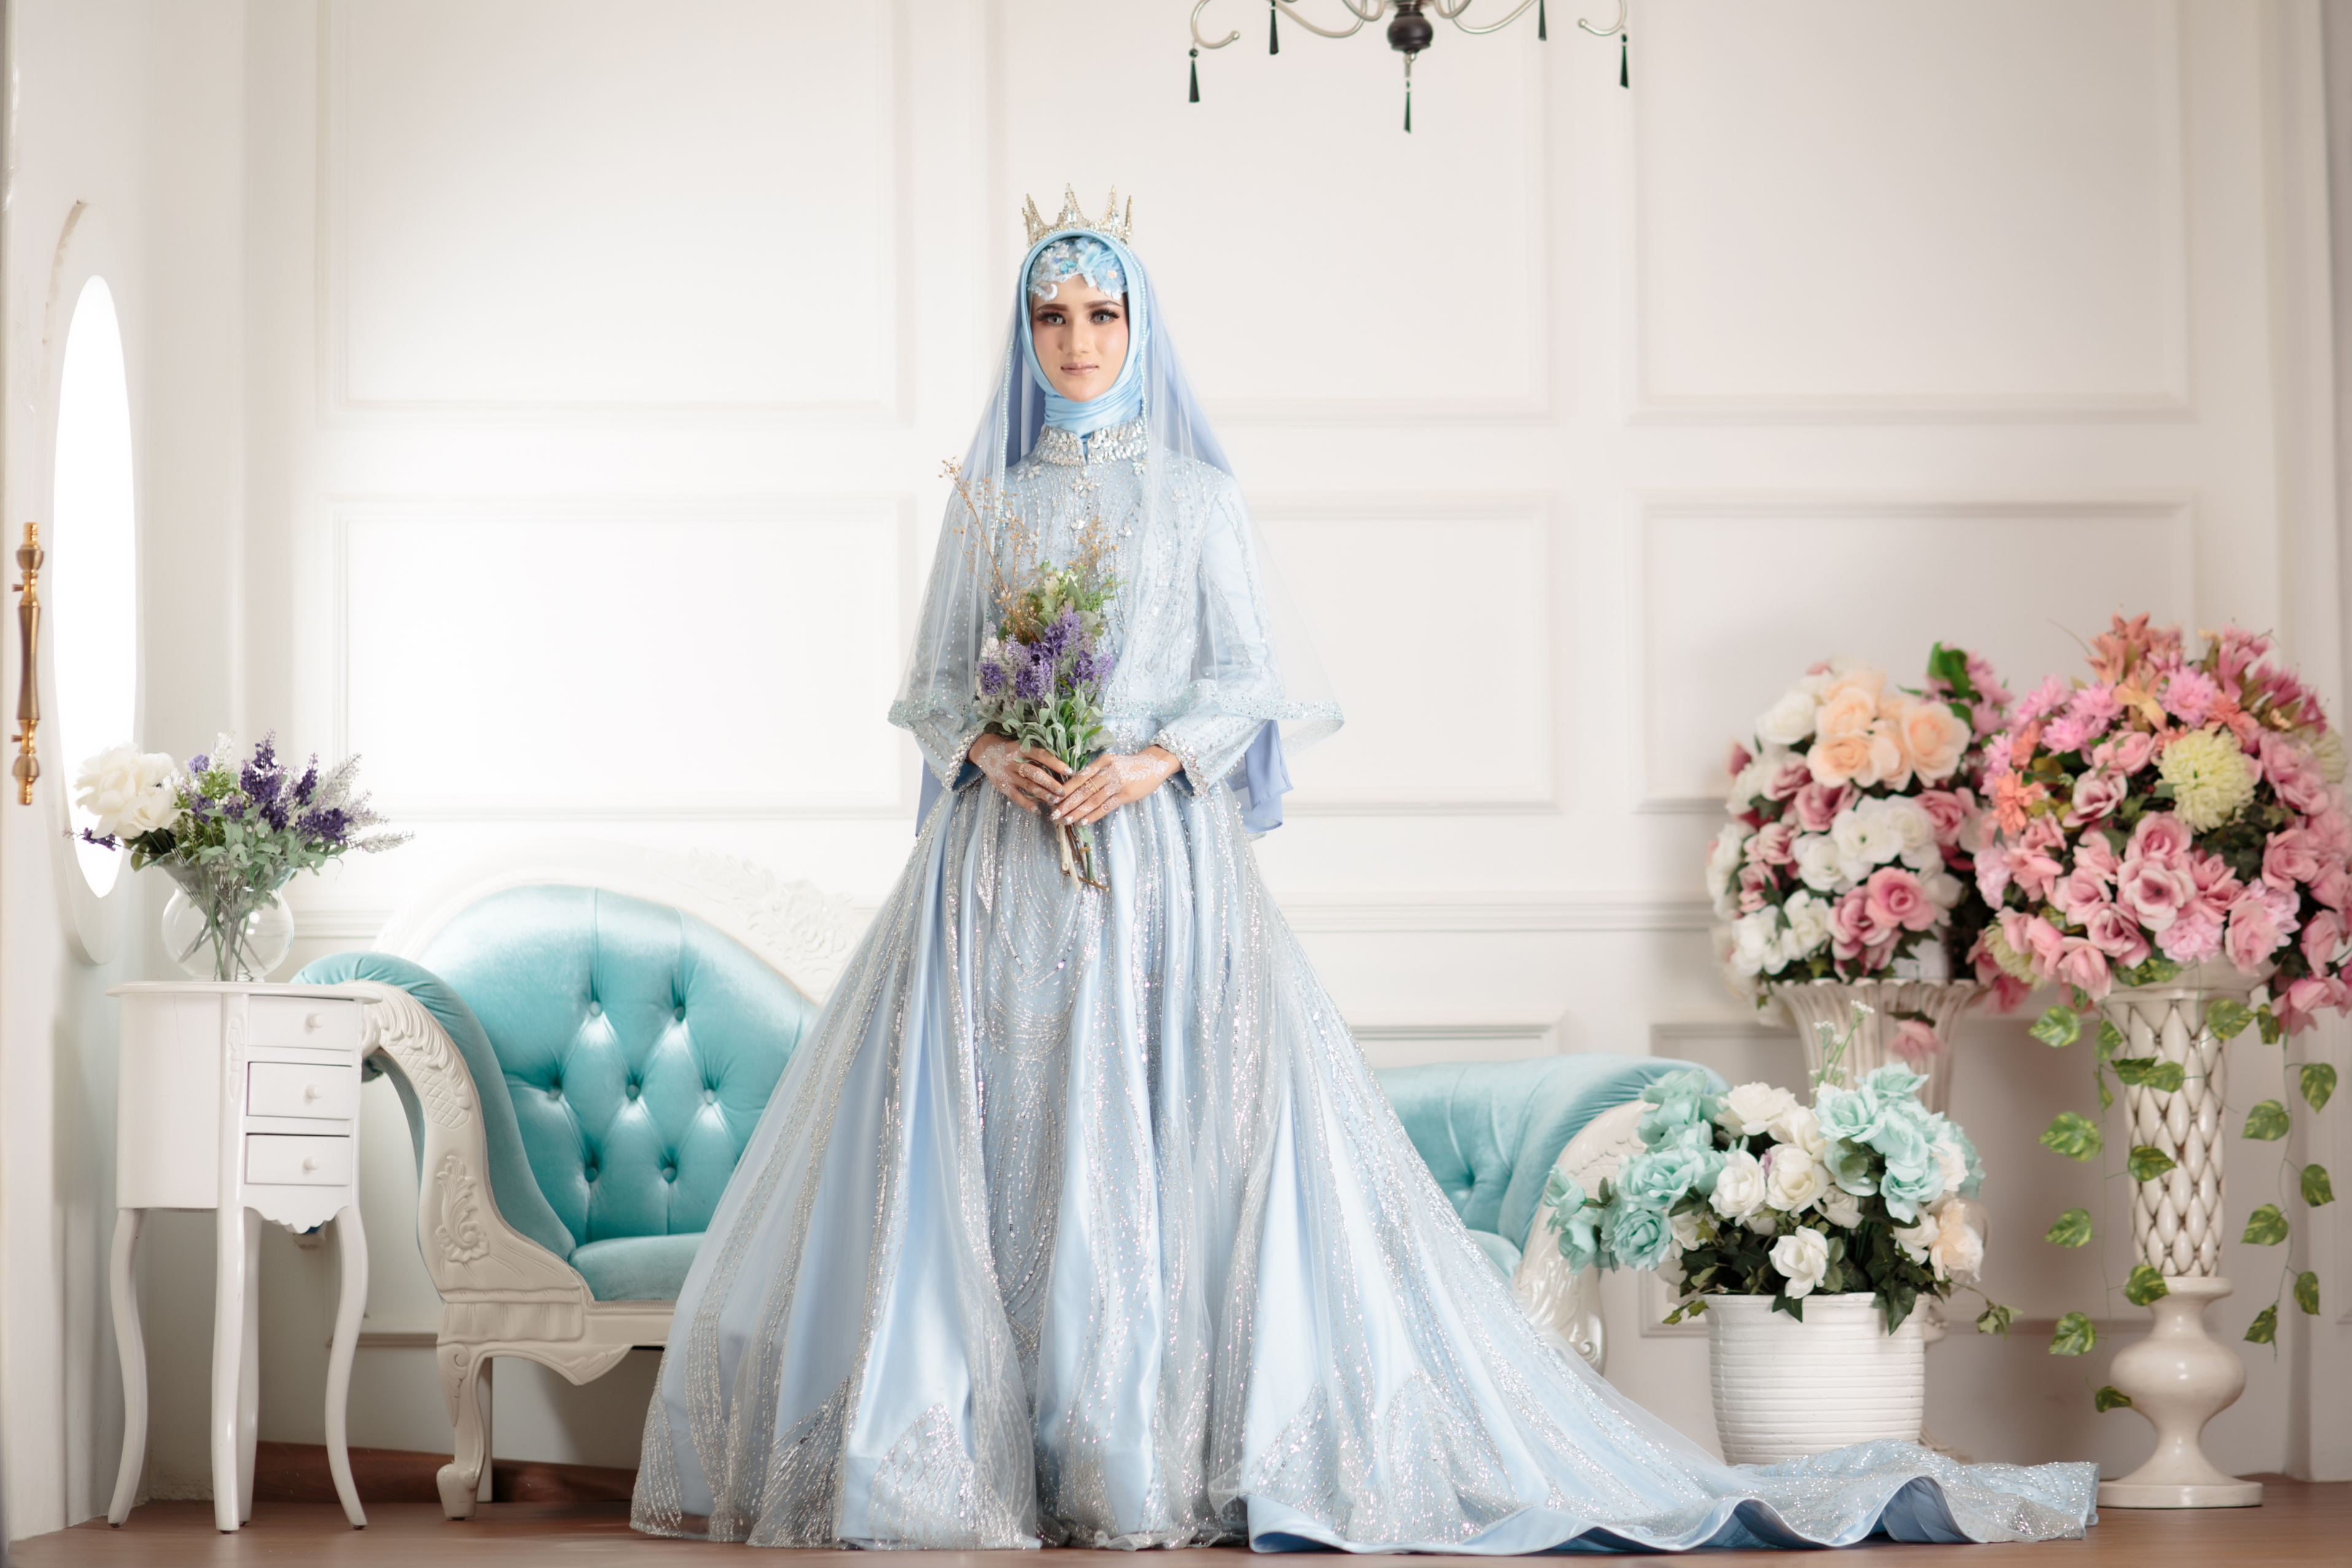 Laksmi Kebaya Muslimah Islamic Bride Wedding Bridal In